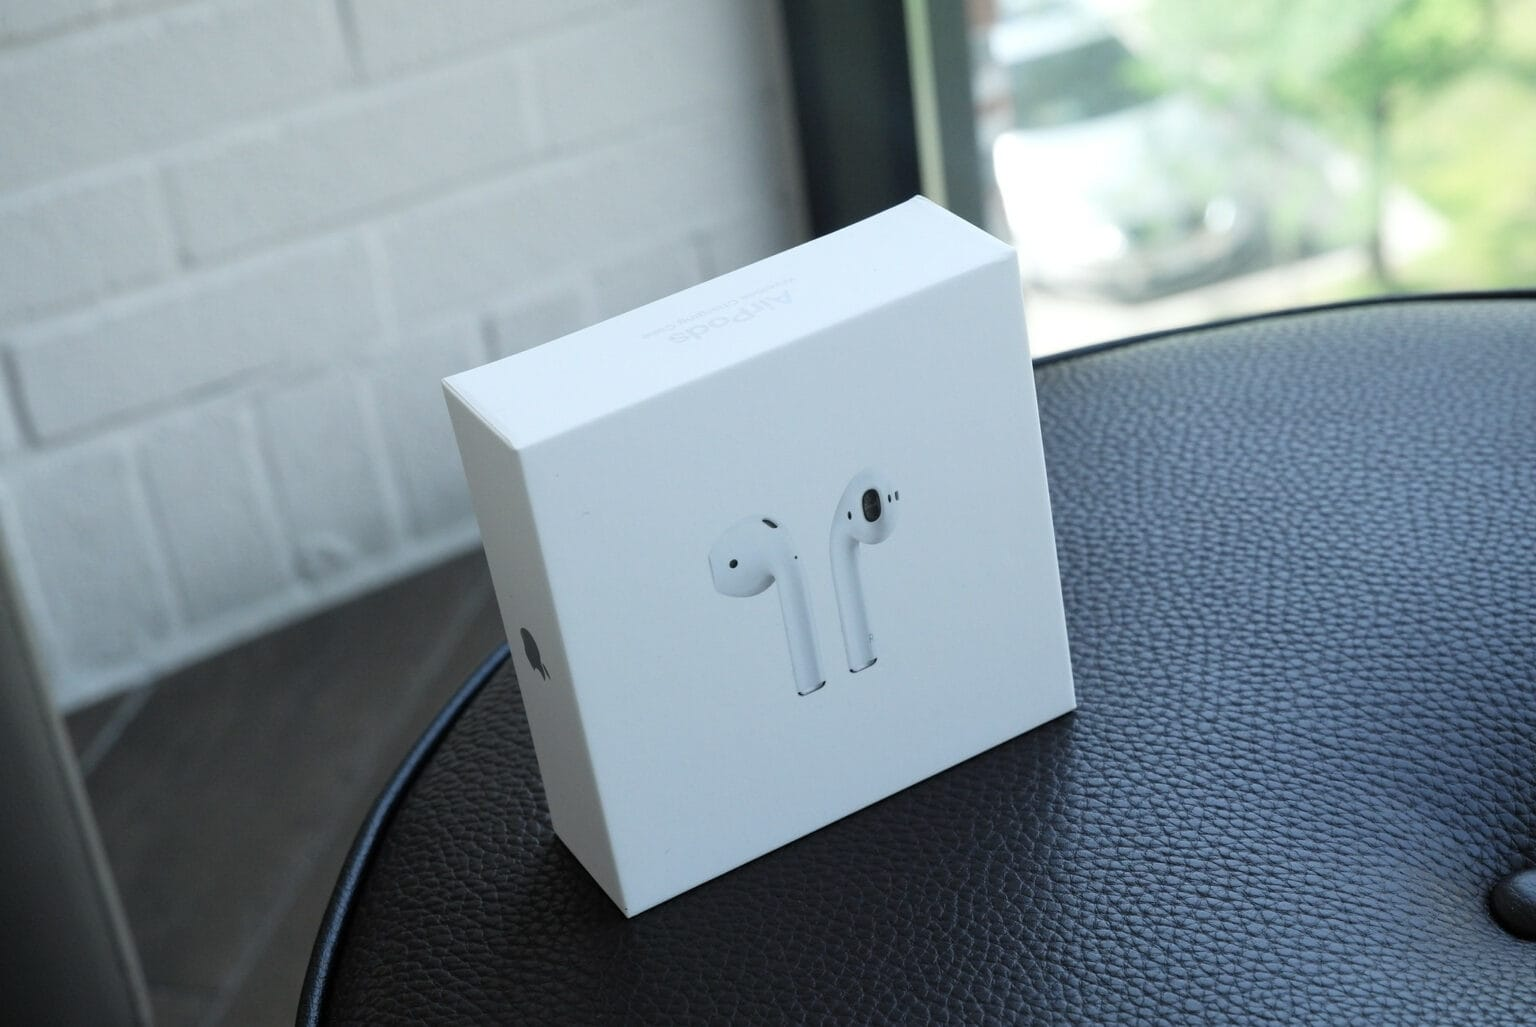 sell your old AirPods